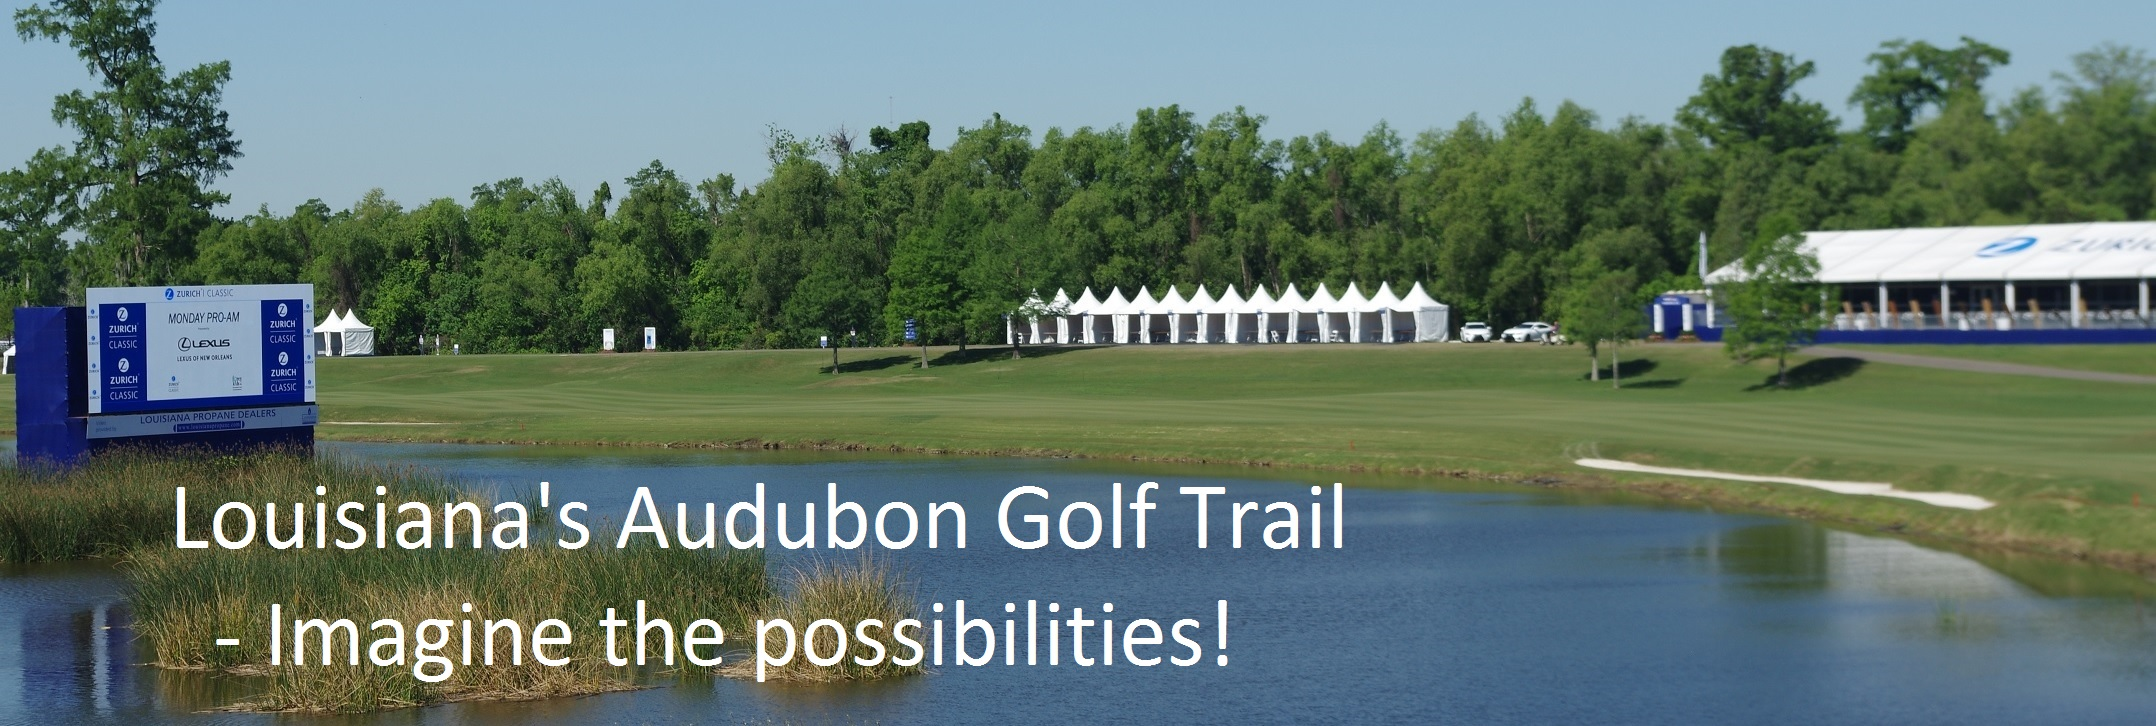 Louisiana Audubon Golf Trail in Golf Oklahoma Magazine